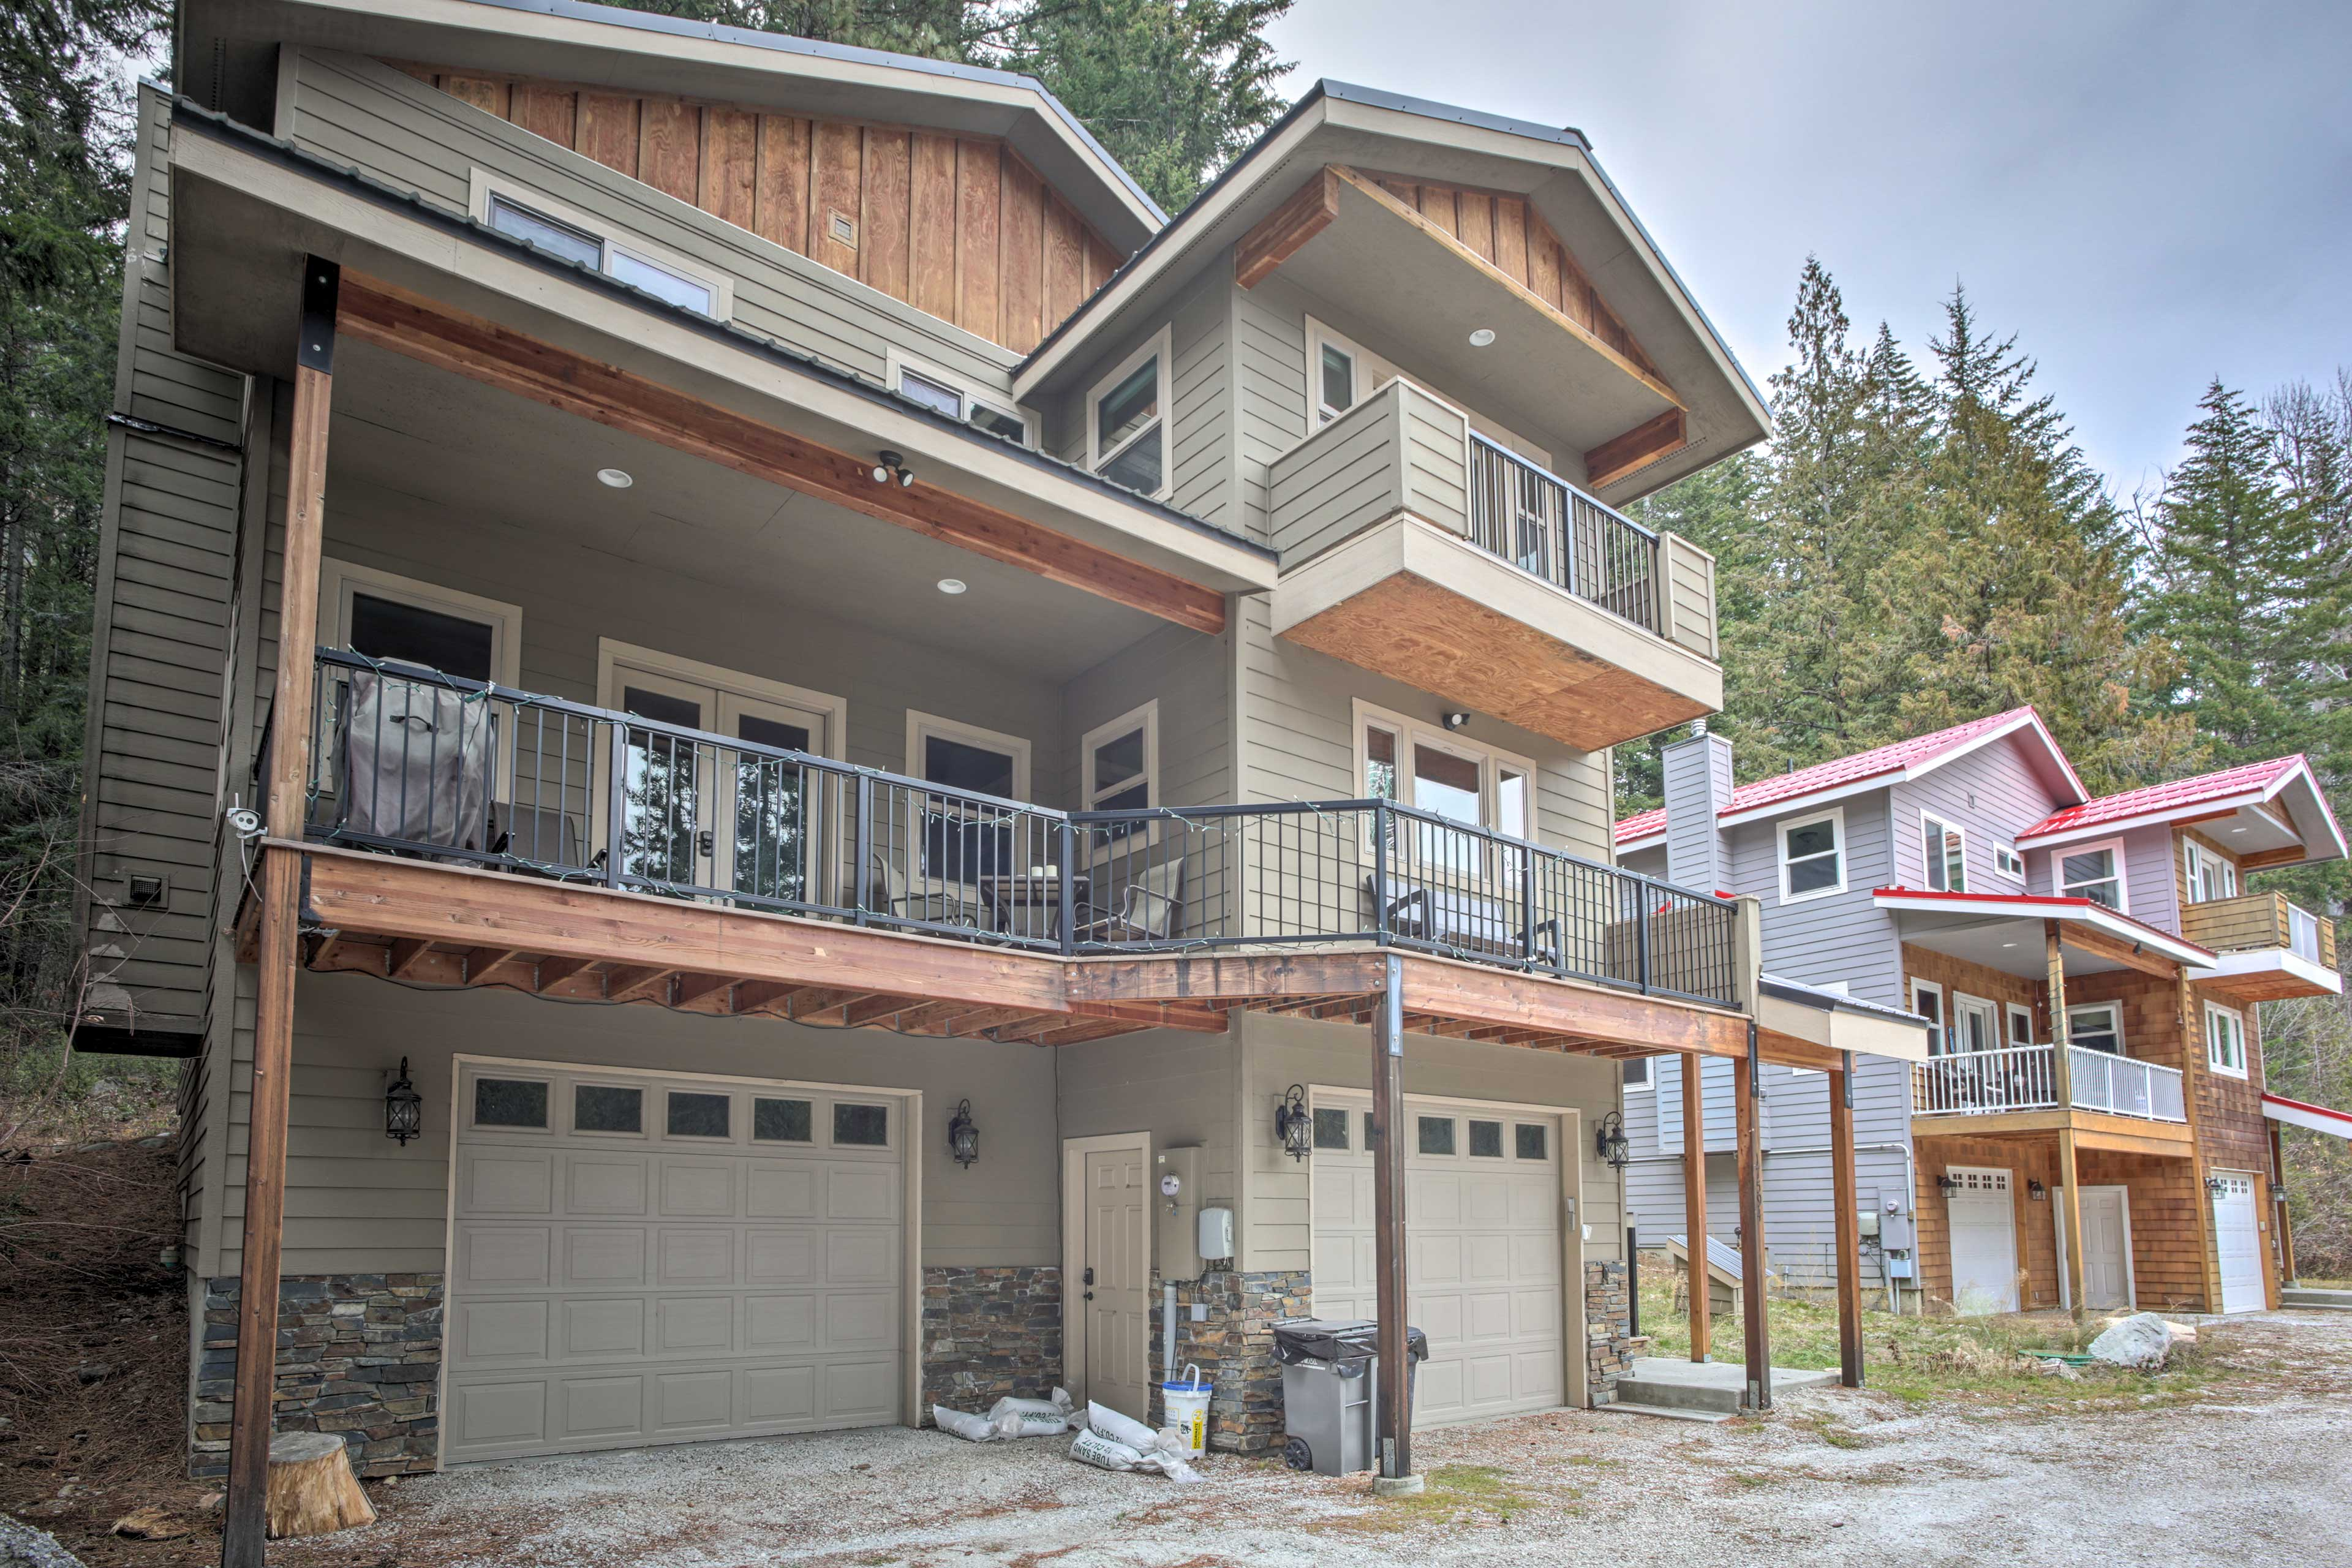 This spacious home offers several balconies and outdoor spaces.